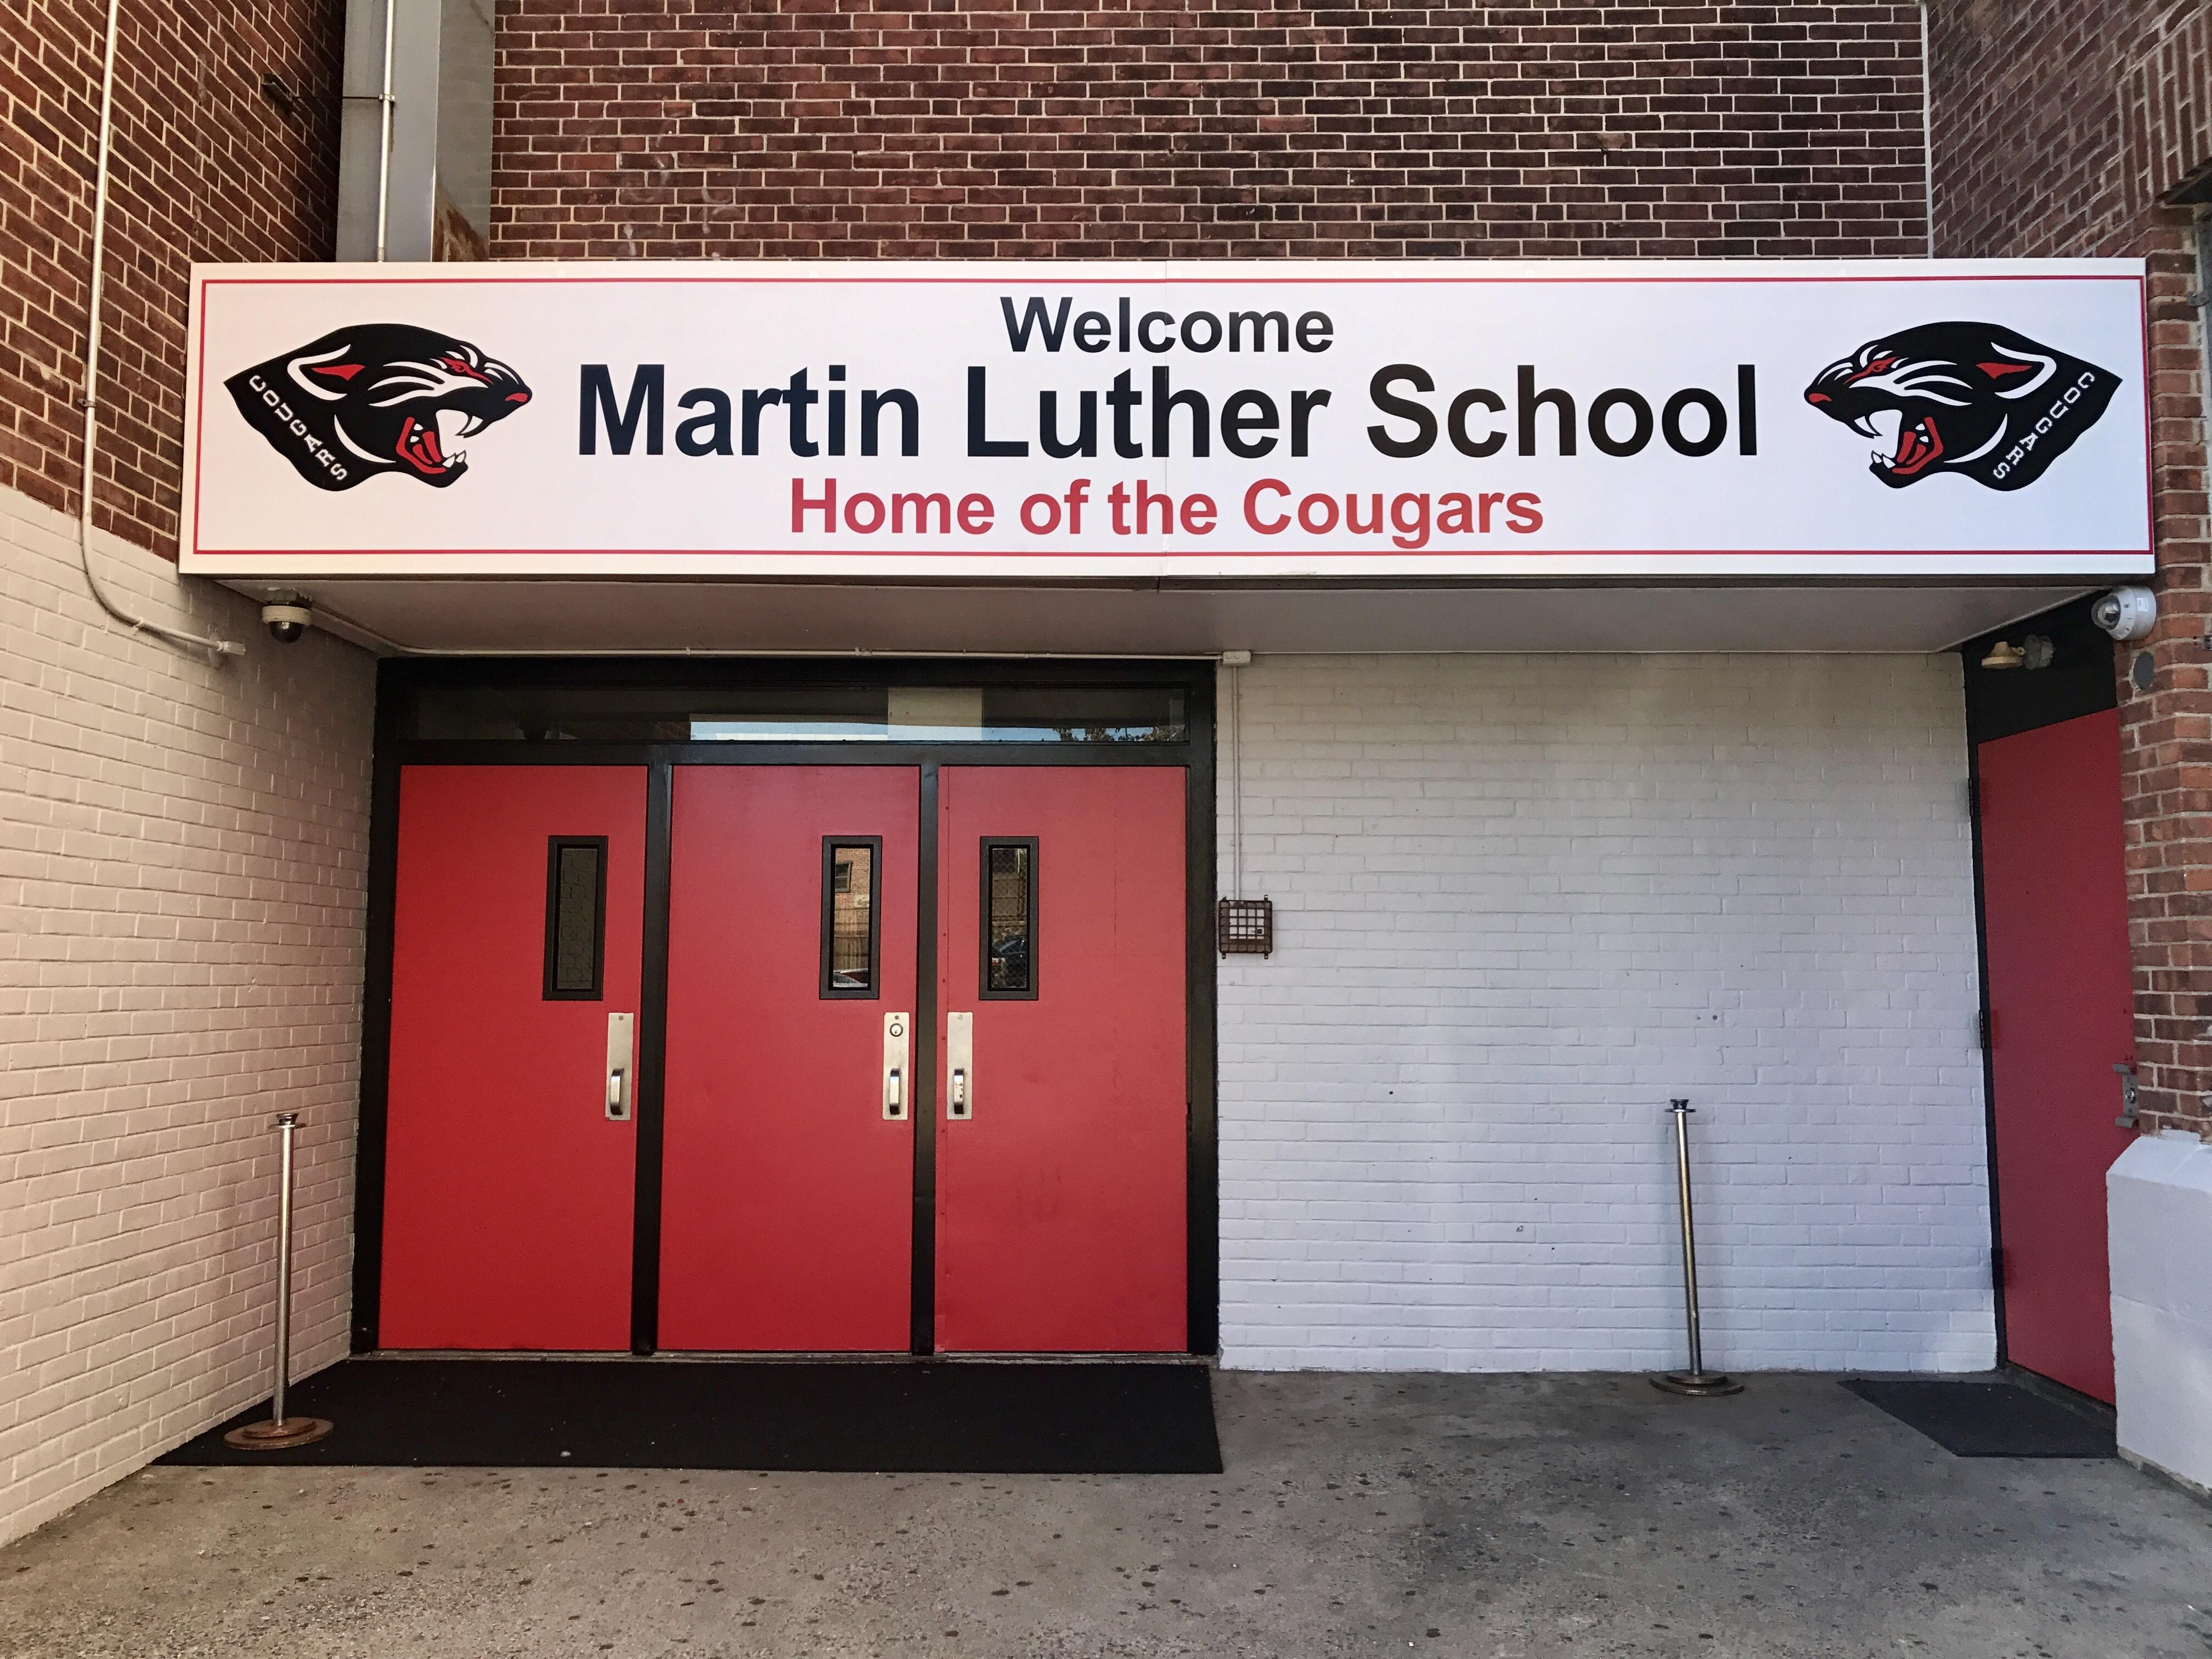 Front facade of Martin Luther School; name banner hangs above three red metal doors.